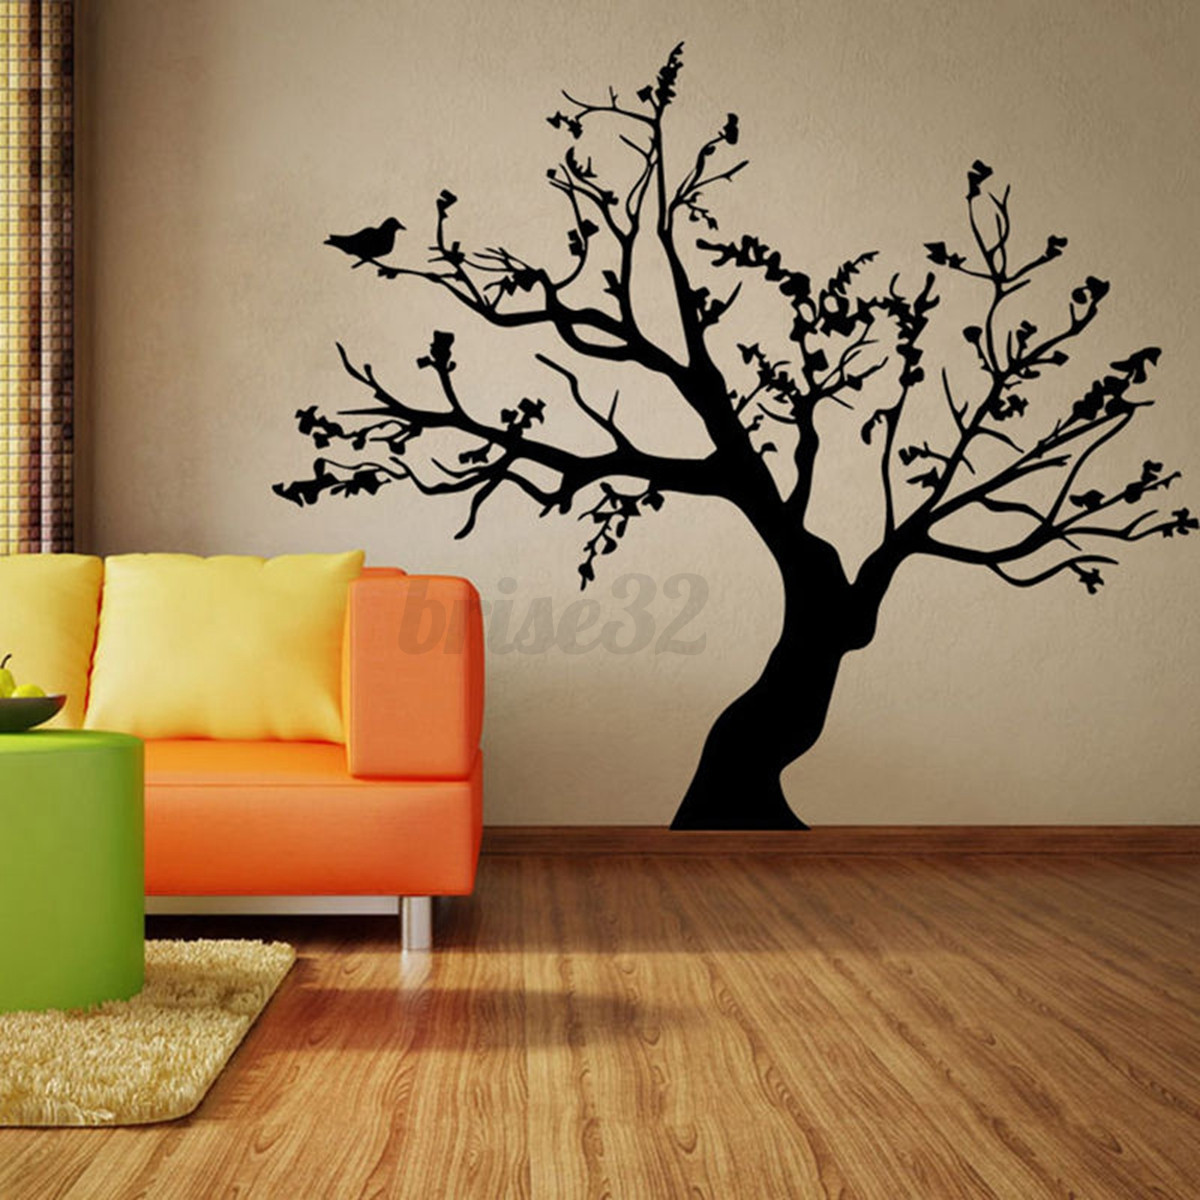 Large family tree diy decal paper art wall sticker home for Diy tree mural nursery